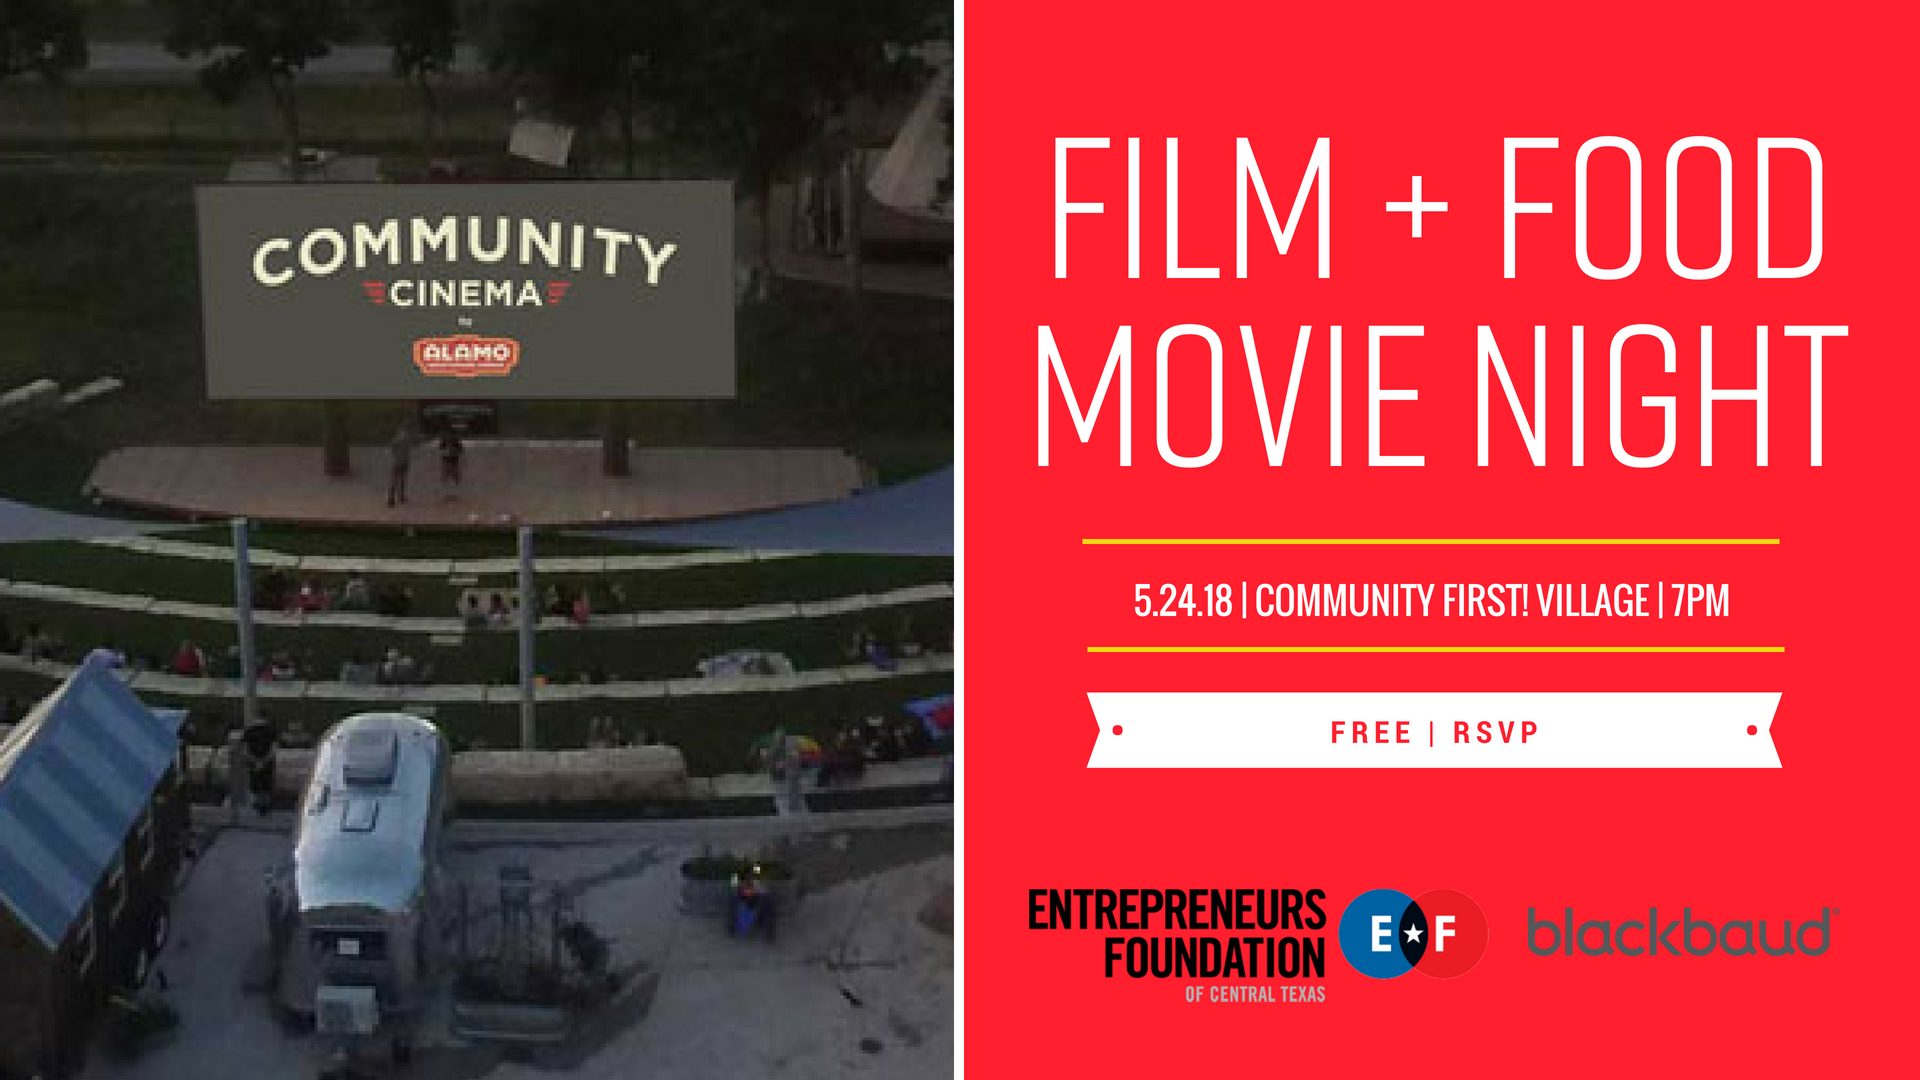 Film + Food Movie Night at the Community First! Village